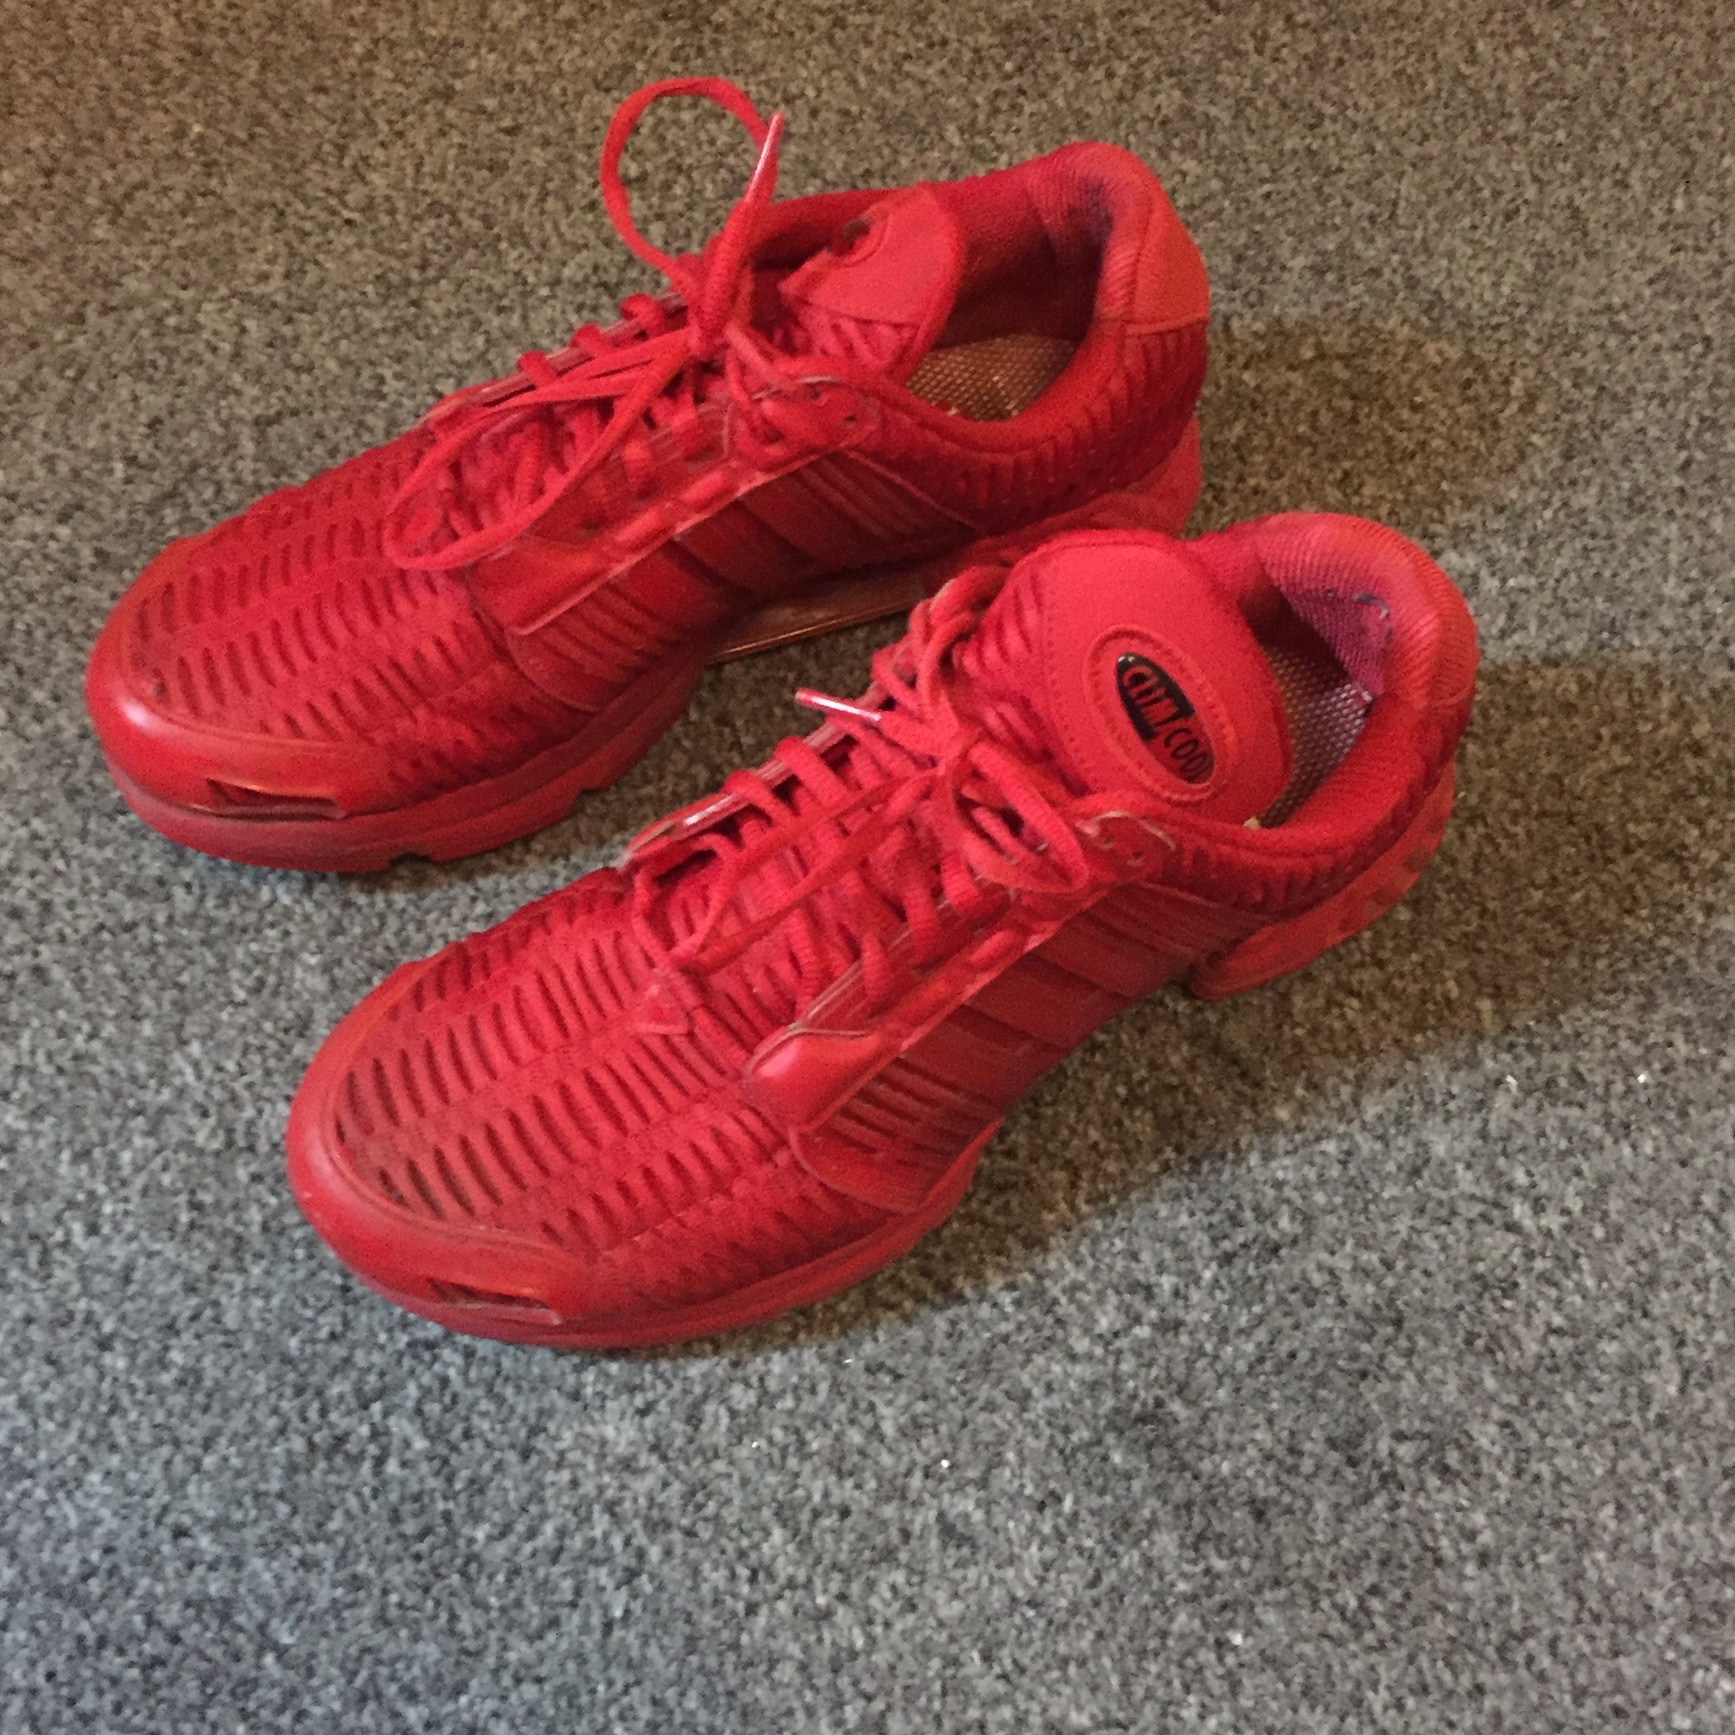 competitive price 04065 9d6bb Adidas ClimaCool running shoes - Triple red - Great... - Depop